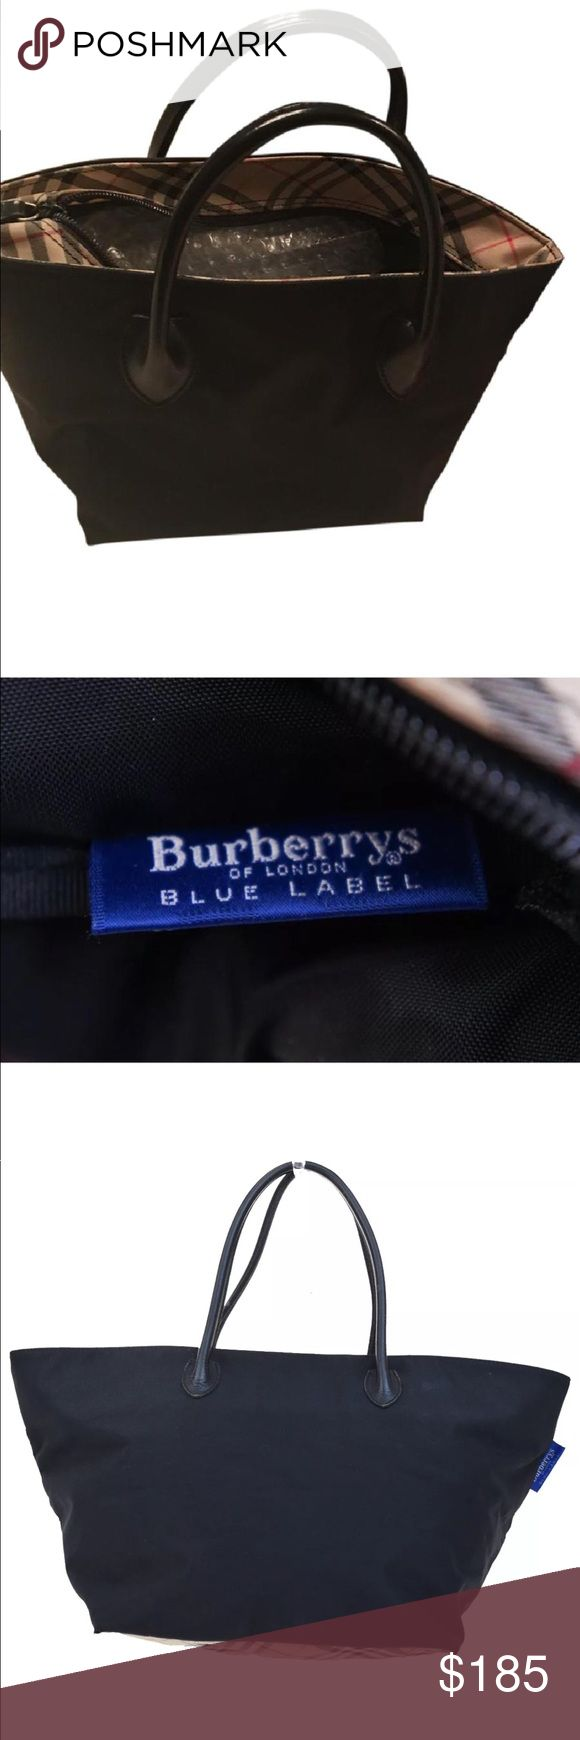 Burberry Jumbo bag with Burberry Print areas Extra large authentic Burberry bag haymarket print bottom and closure are. Used with frayed corners see last pic but corners were sealed for no further damage Hence Price! No dustbag sorry! Burberry Bags Shoulder Bags